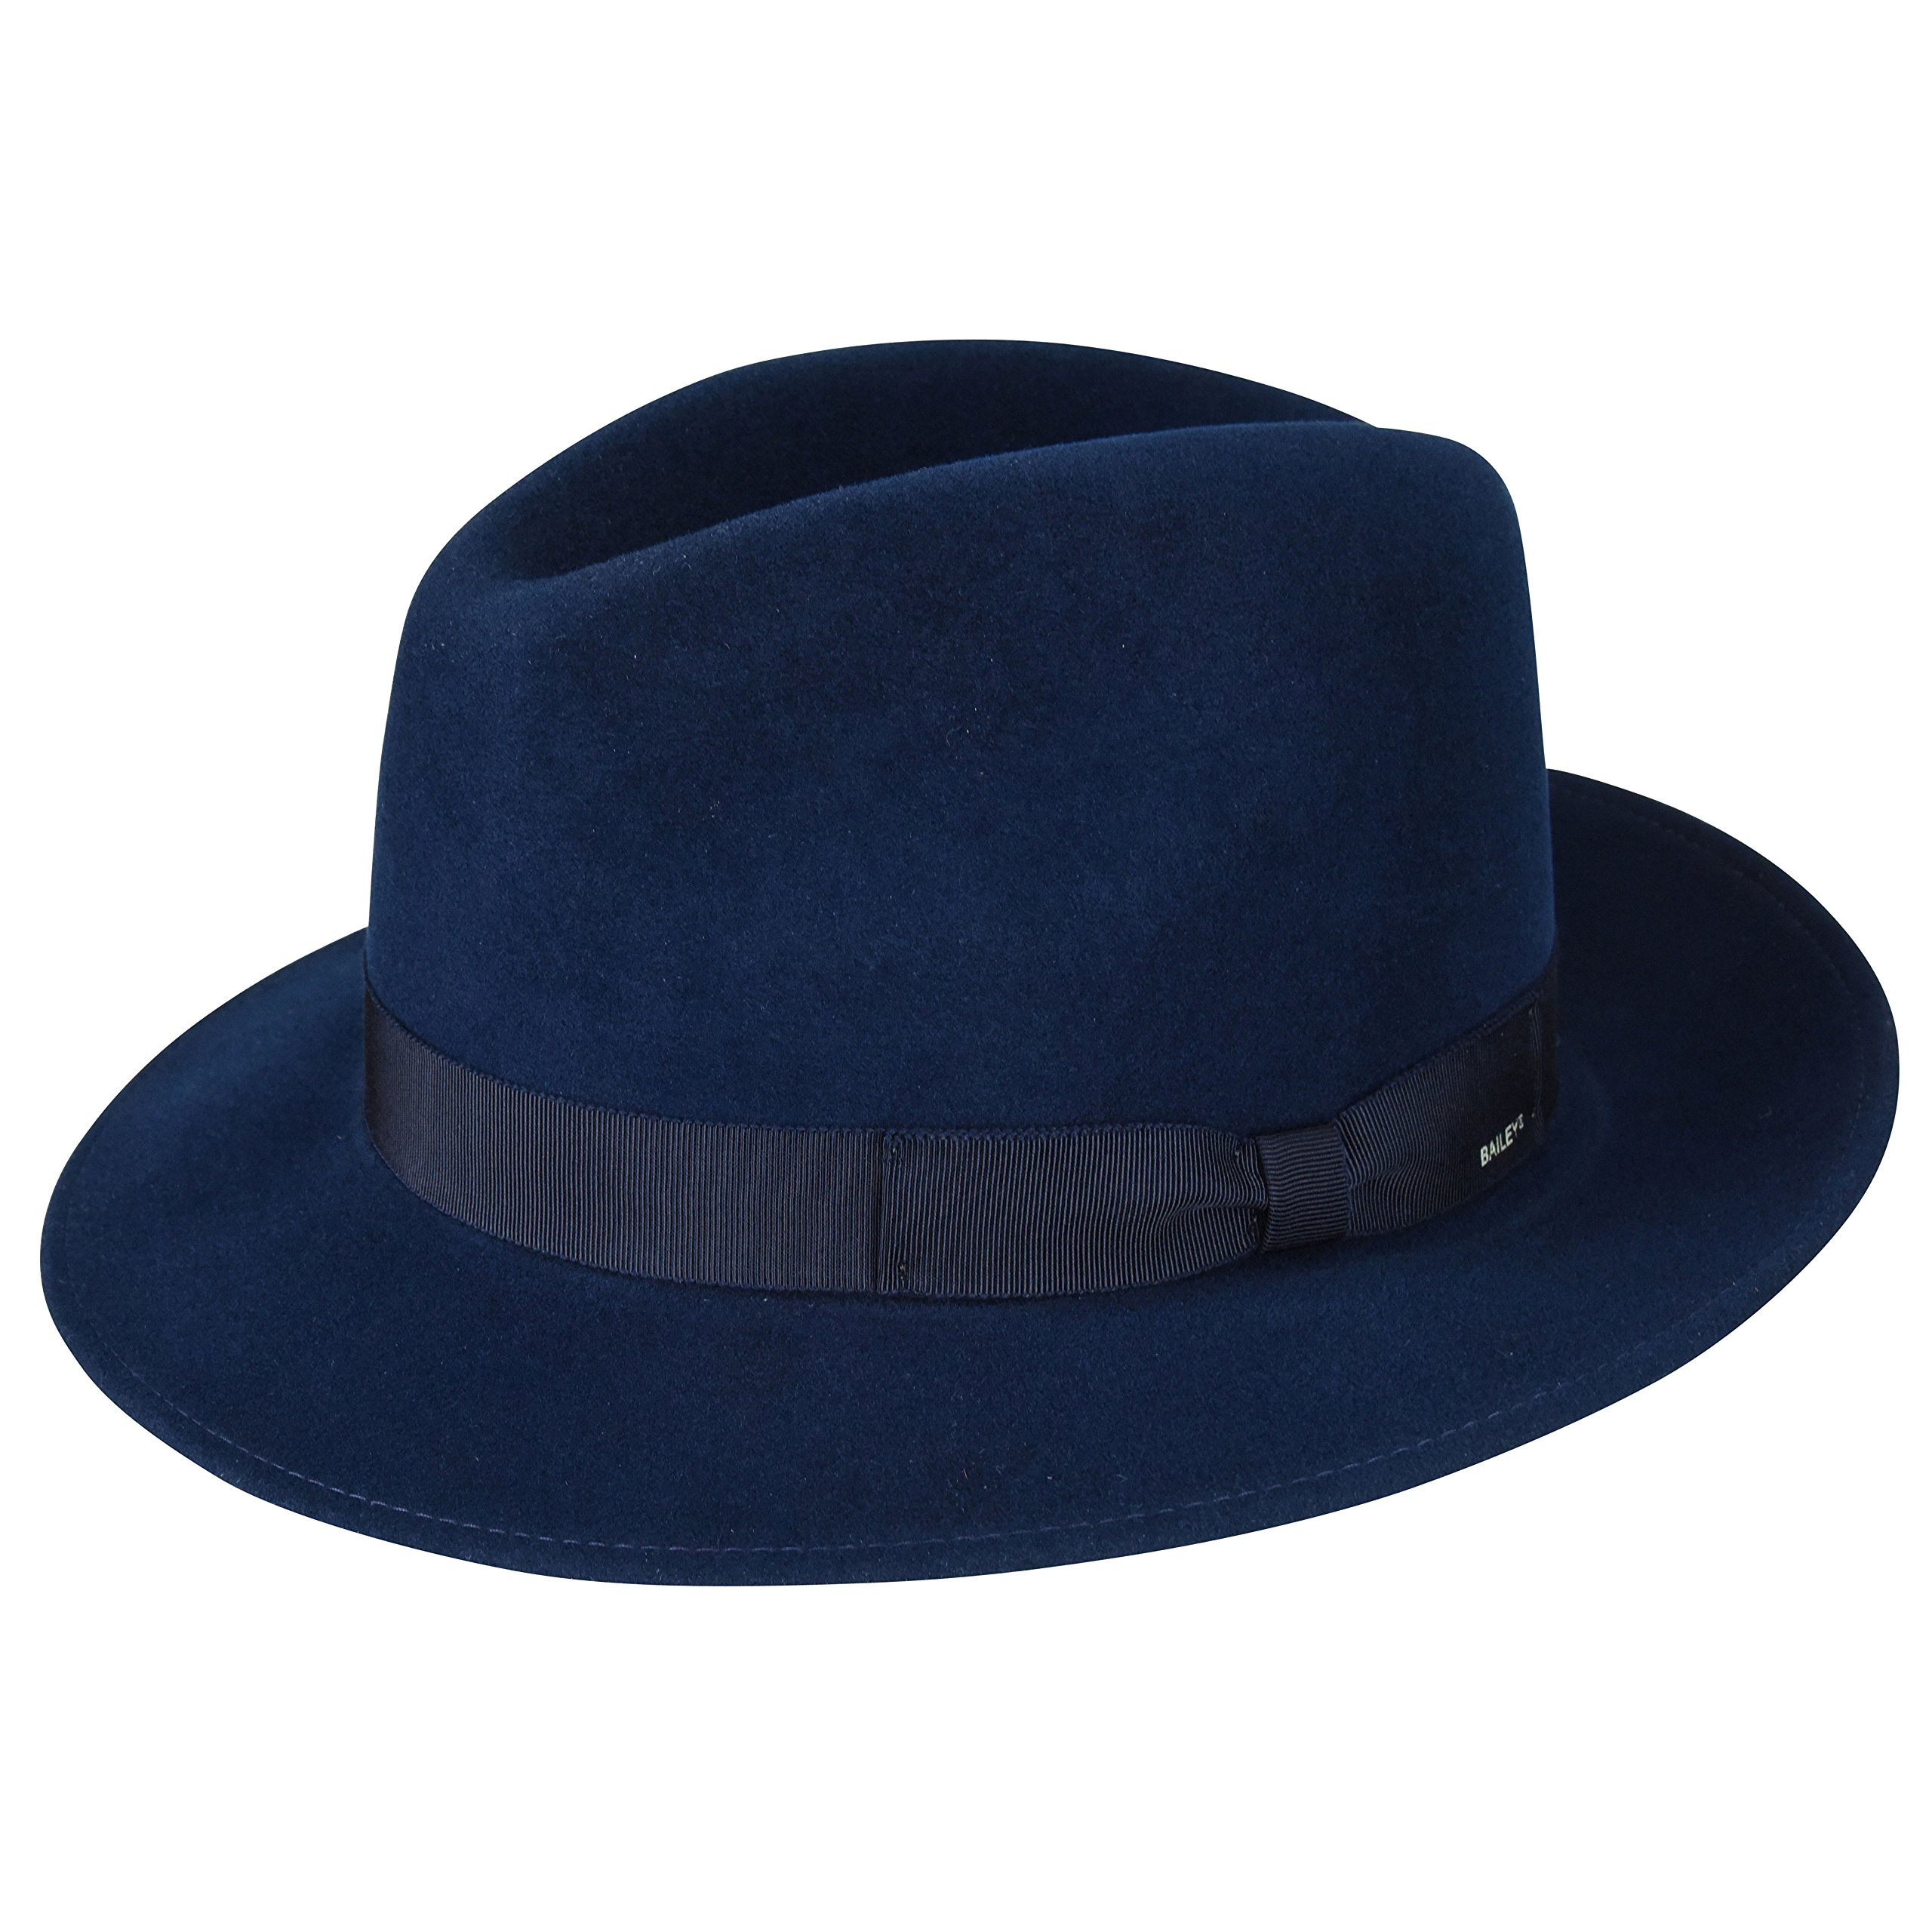 Bailey Of Hollywood Male Male Winters Fedora Peacoat L Peacoat L